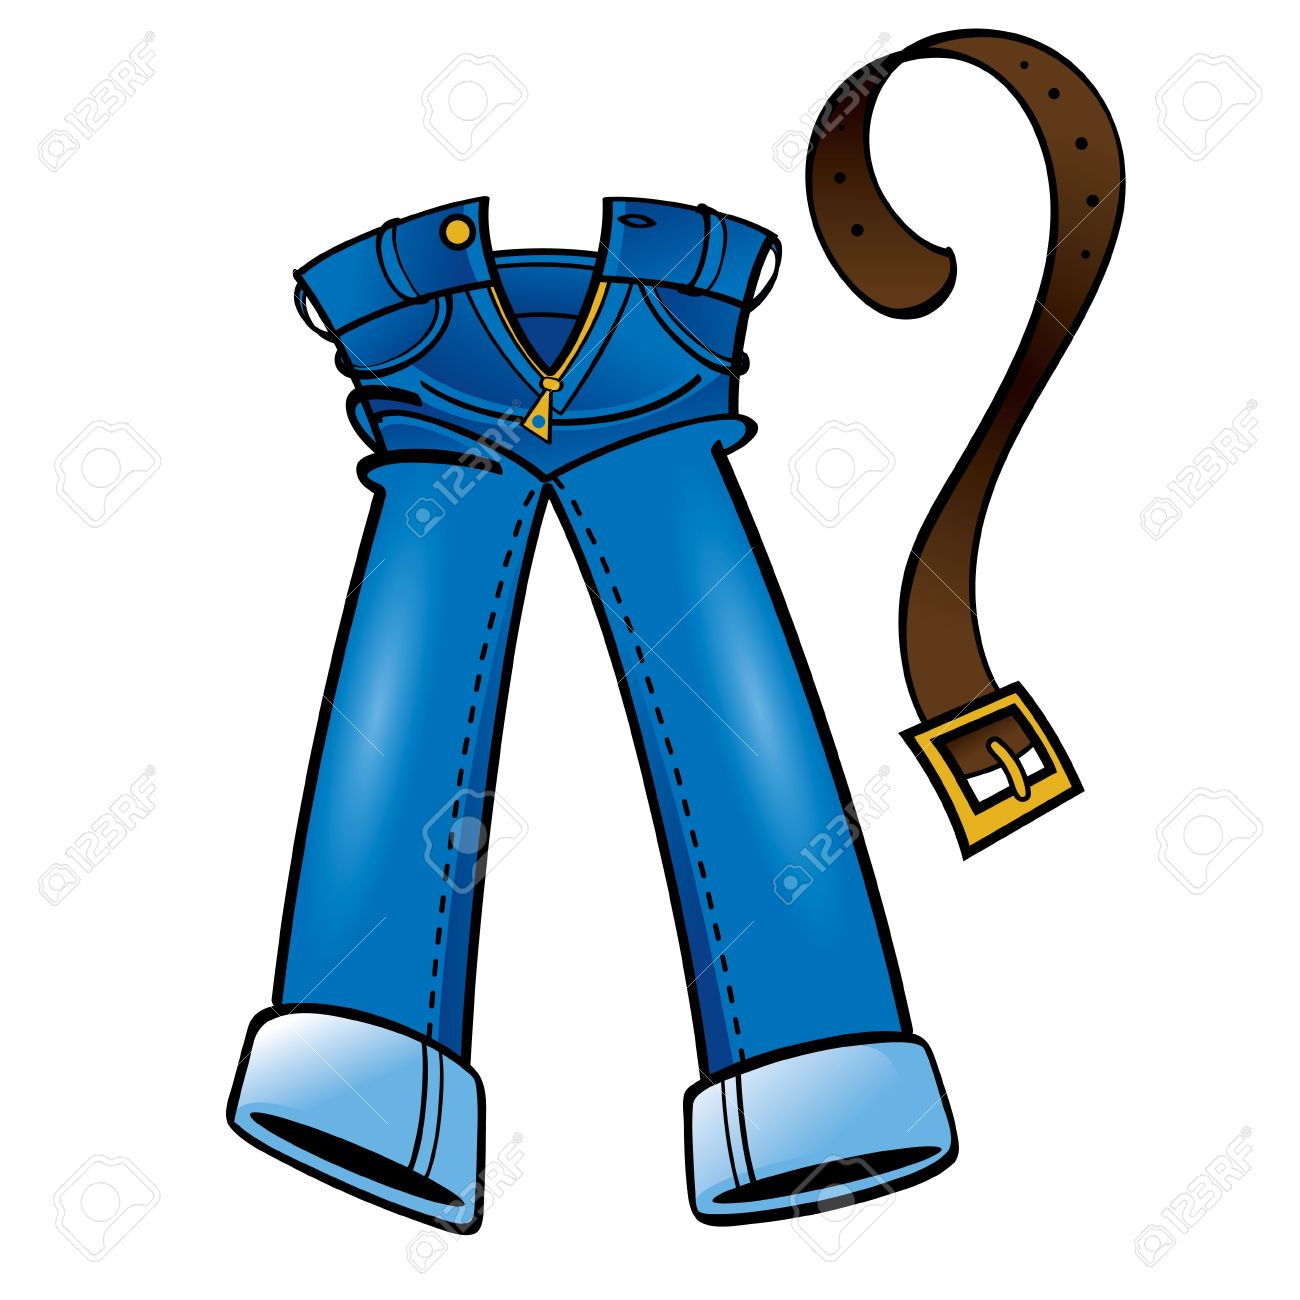 Denim clipart - Clipground